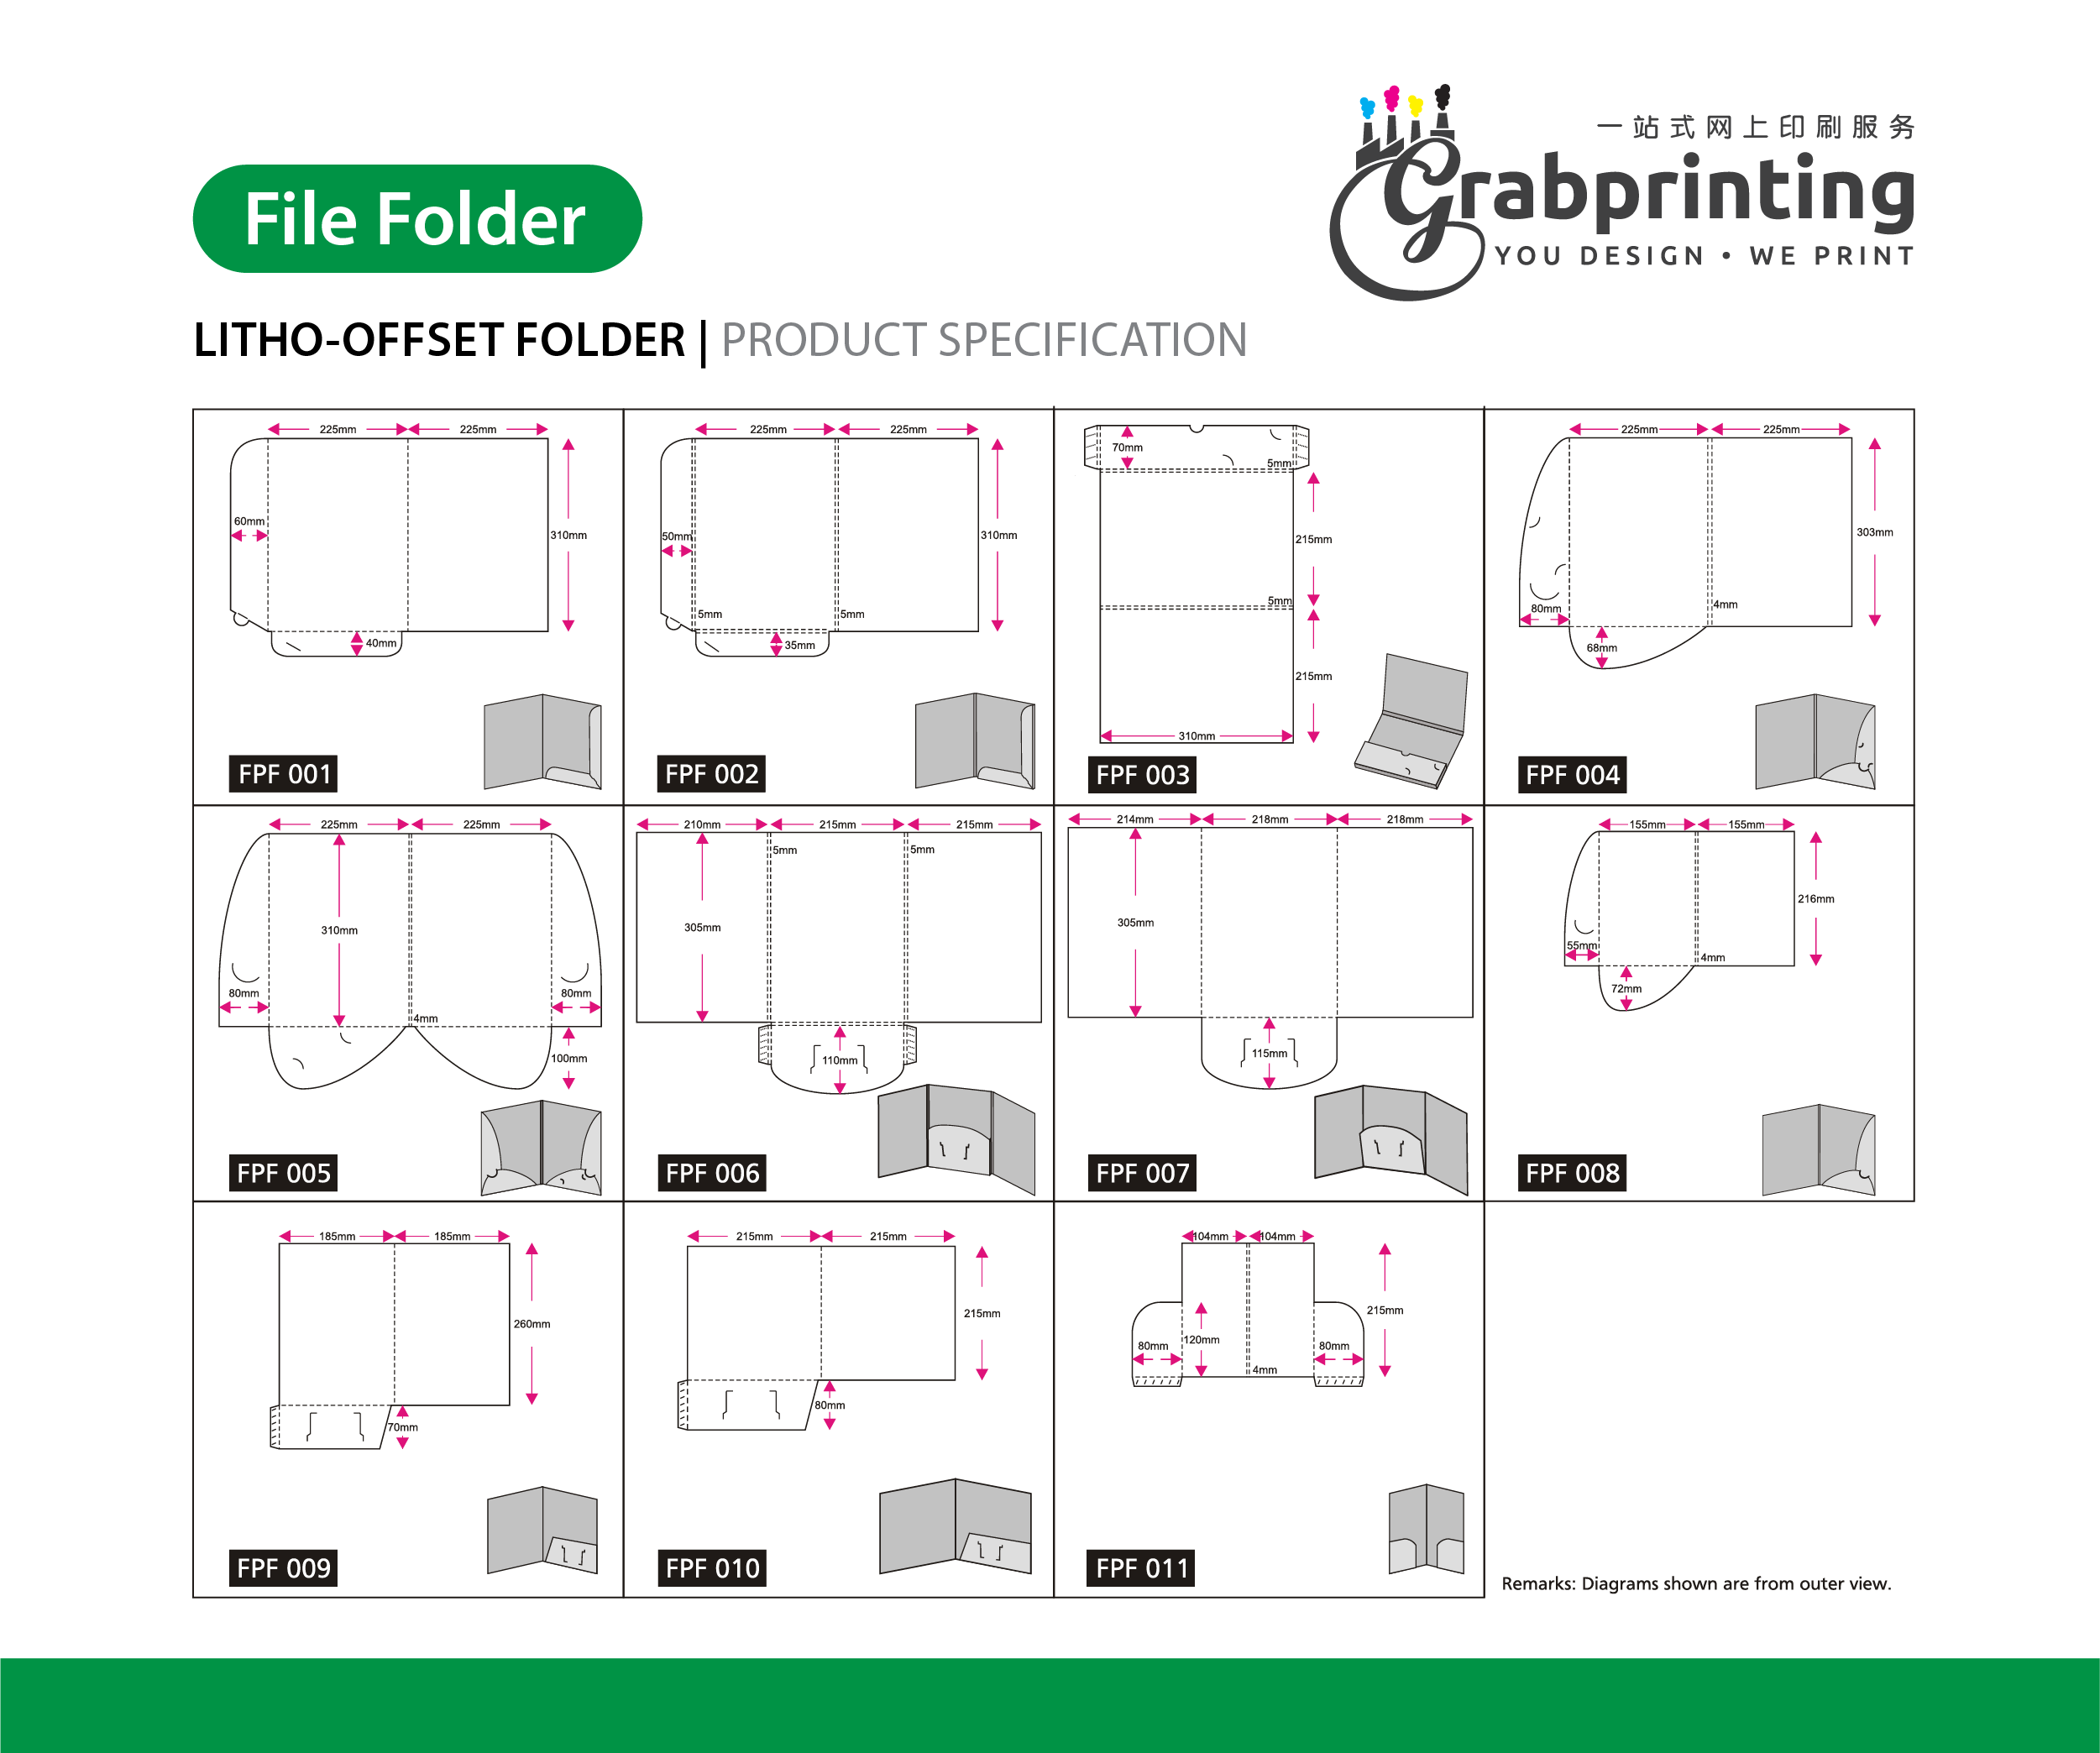 File Folder folder lo spec file folder 600px 501px